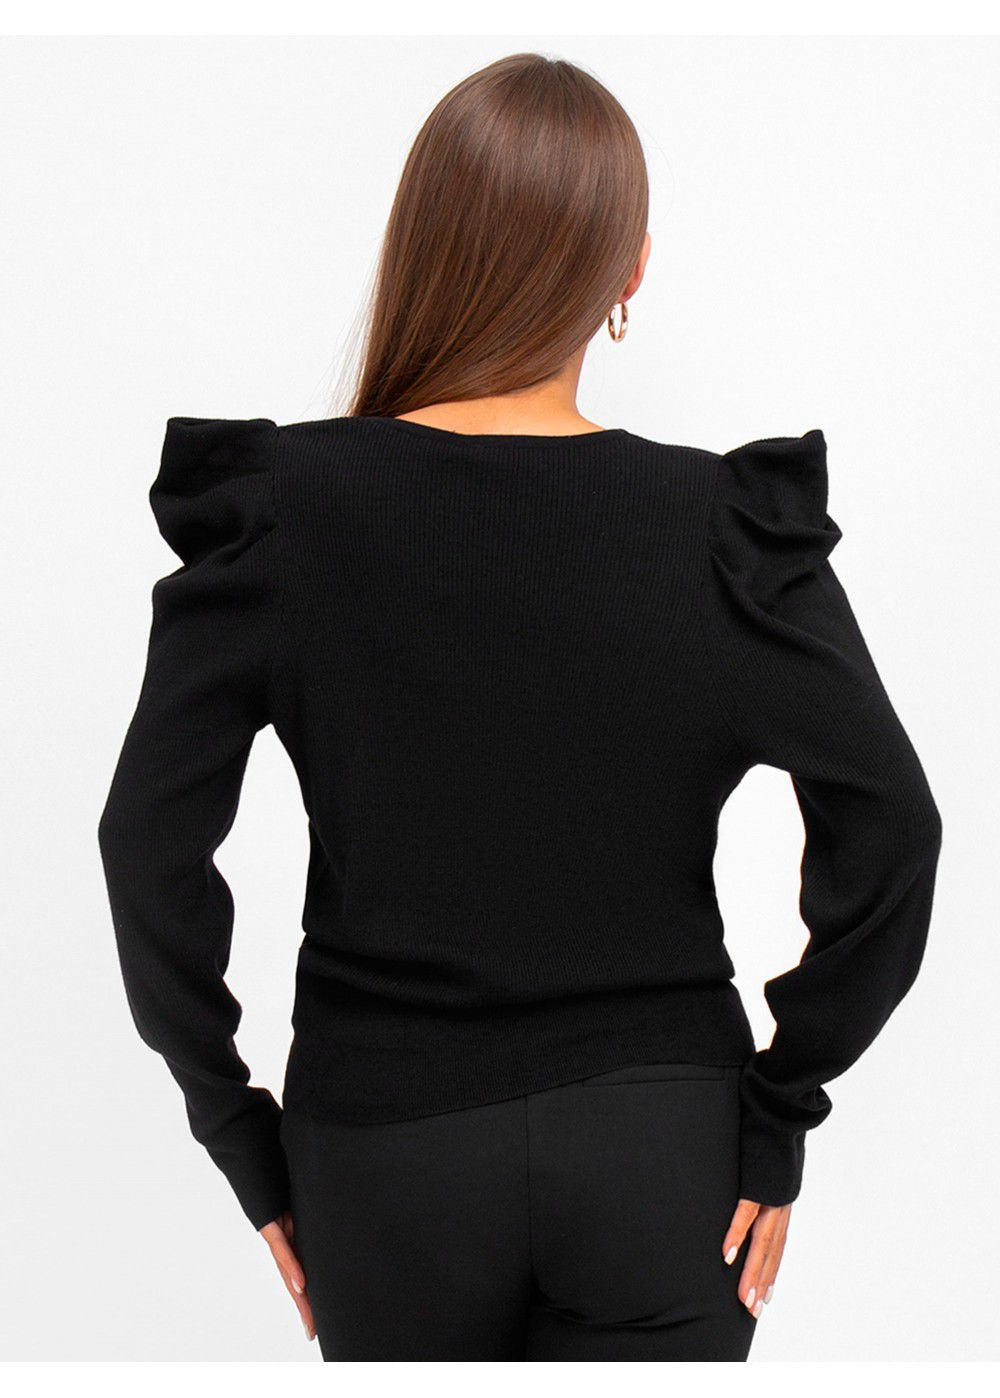 A.L.C. Black Sweater